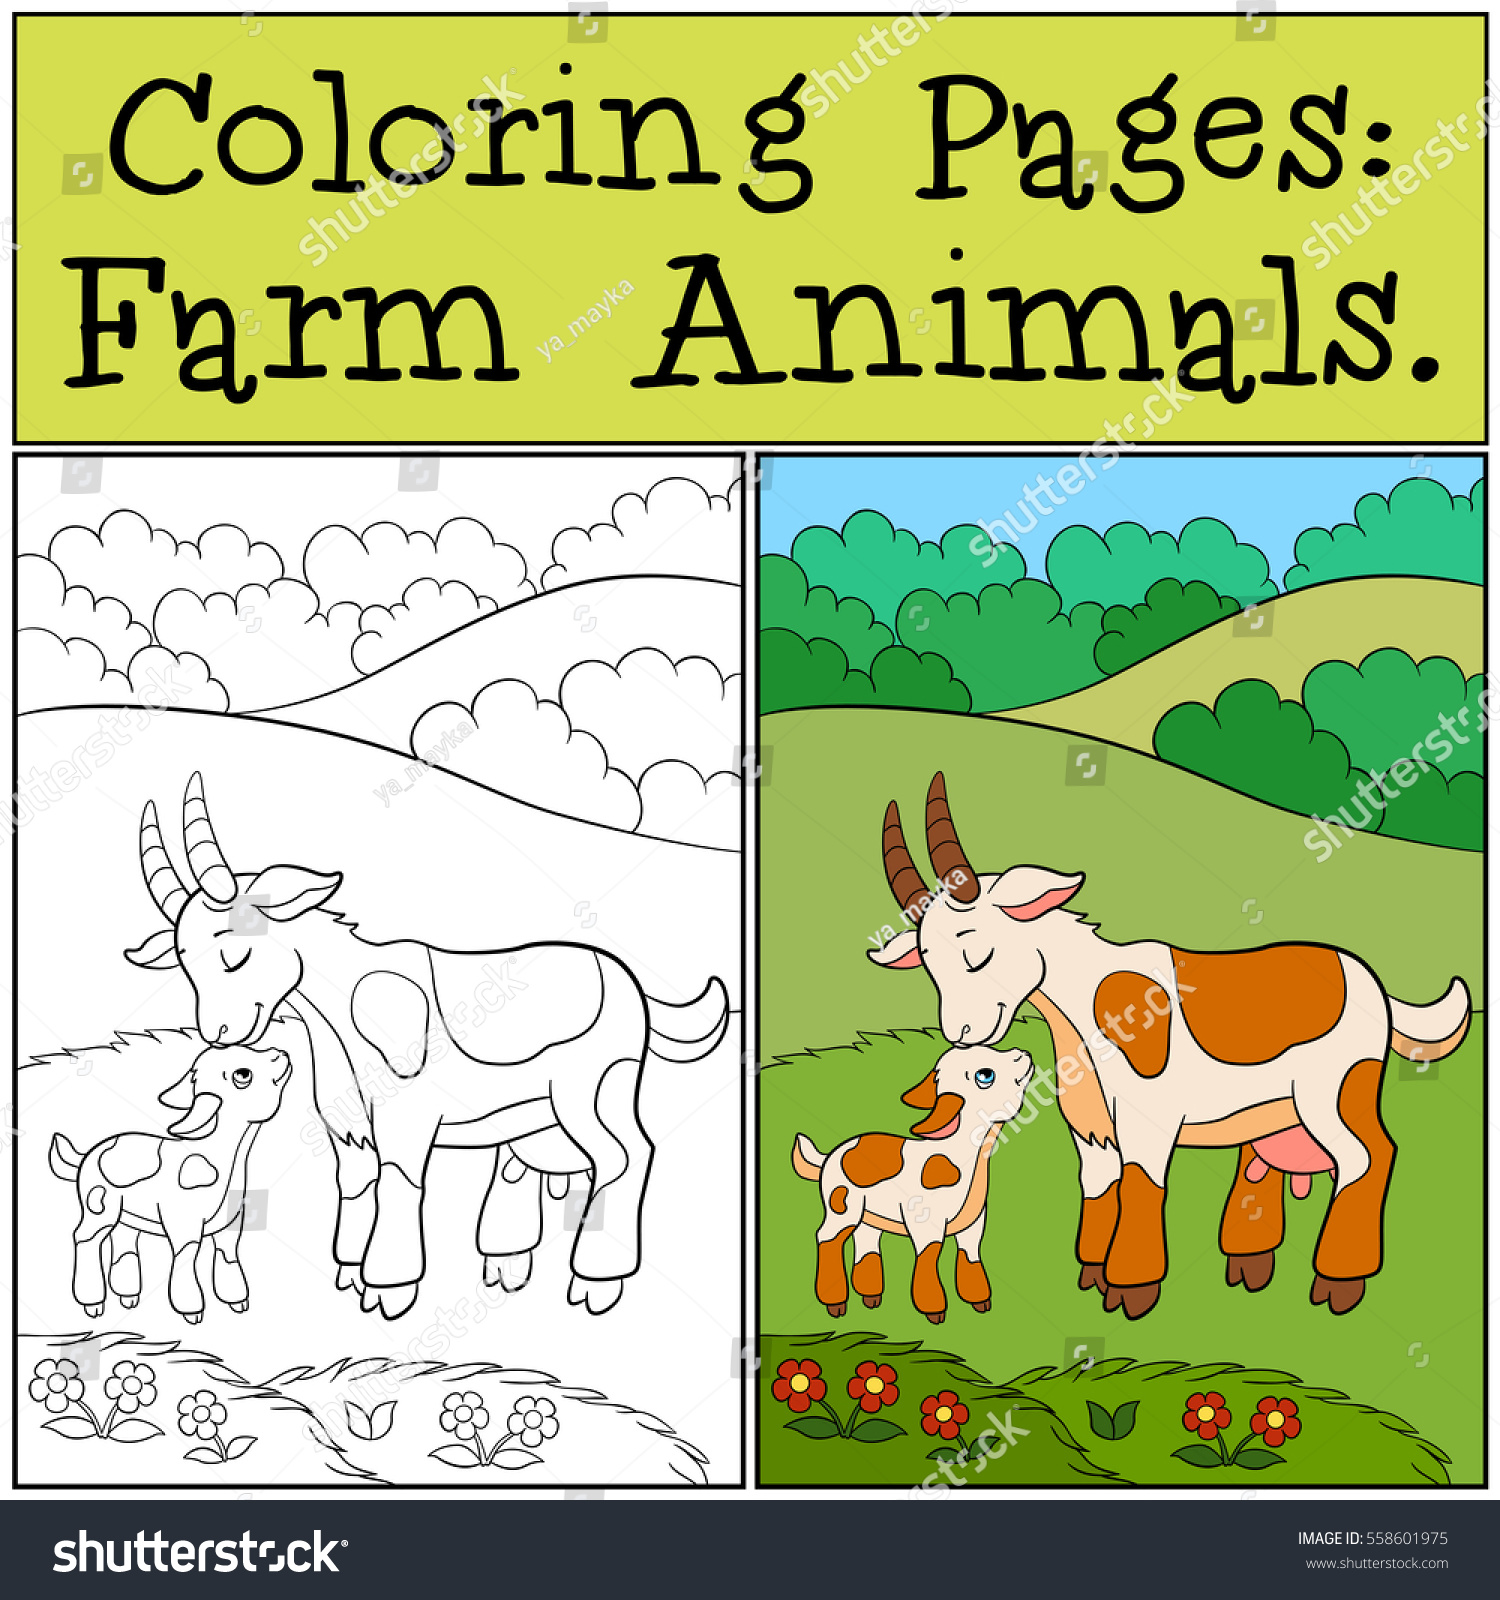 Coloring Pages Farm Animals Mother Goat Stock Photo (Photo, Vector ...